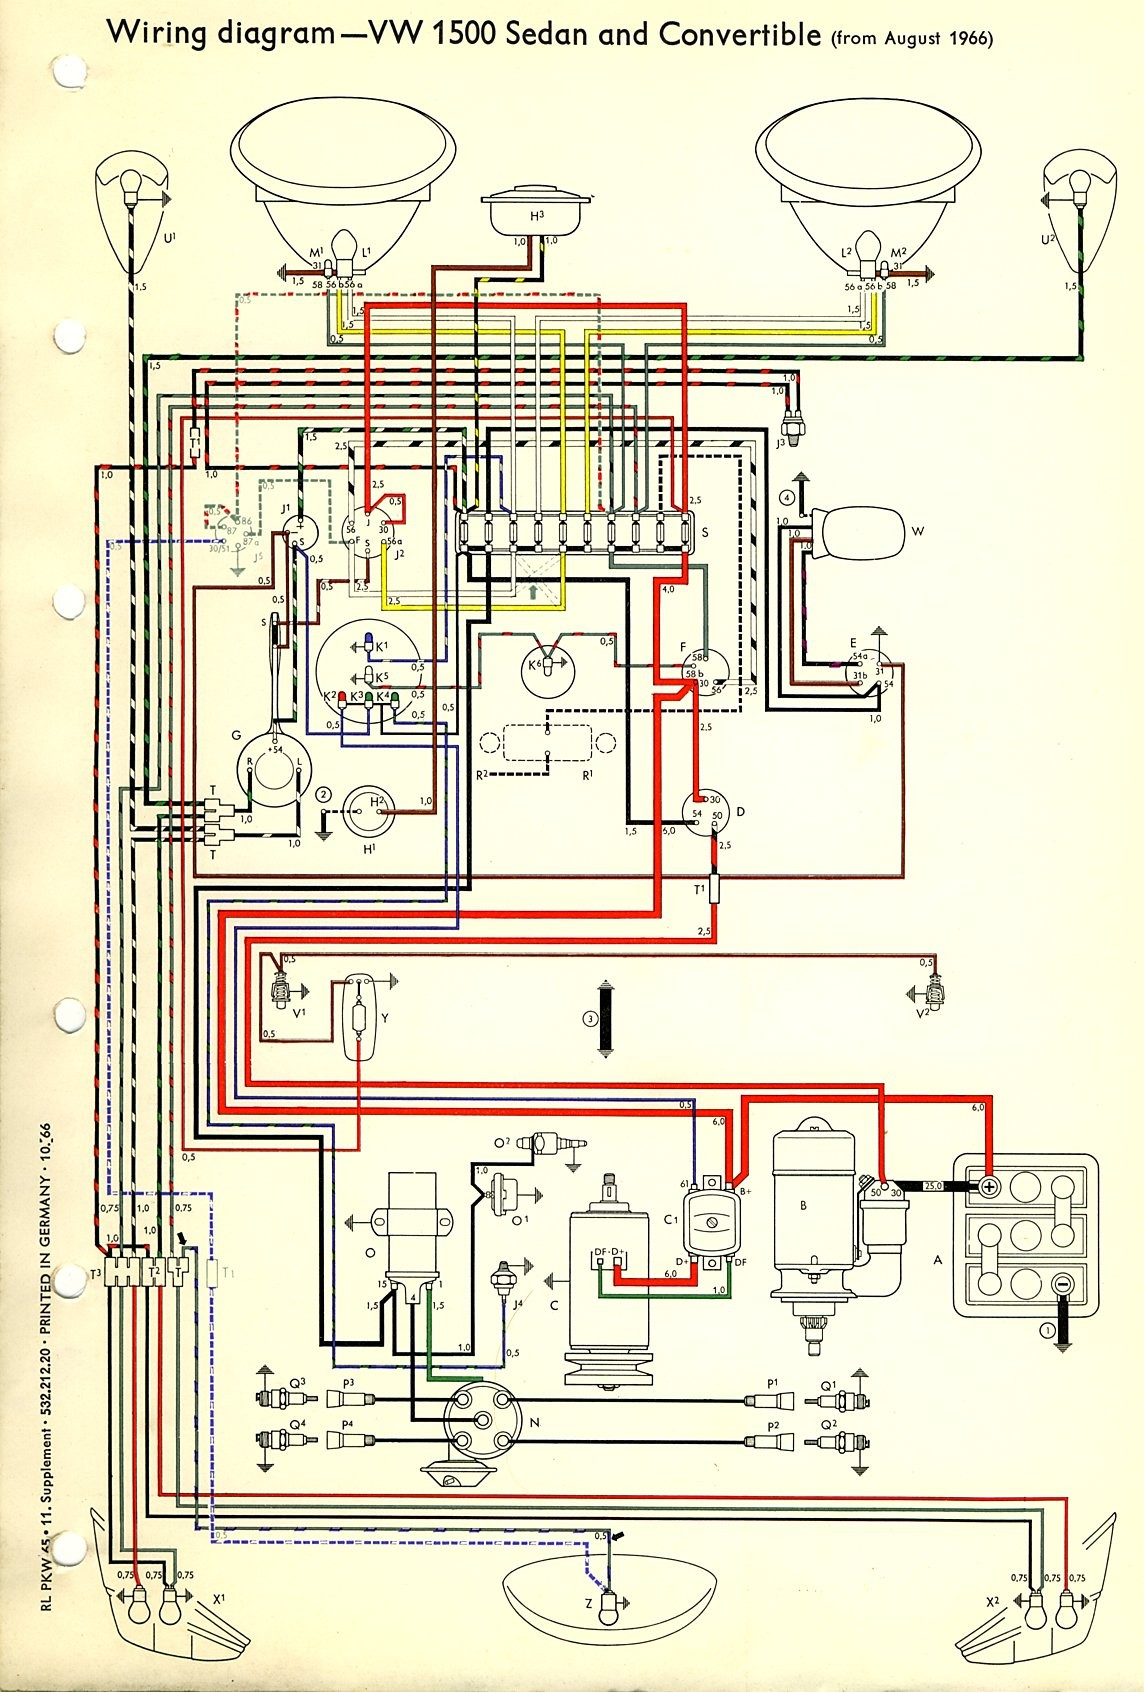 wire vw beetle engine diagrams best site wiring harness VW Beetle  Alternator Wiring 1973 vw super beetle engine wiring diagram